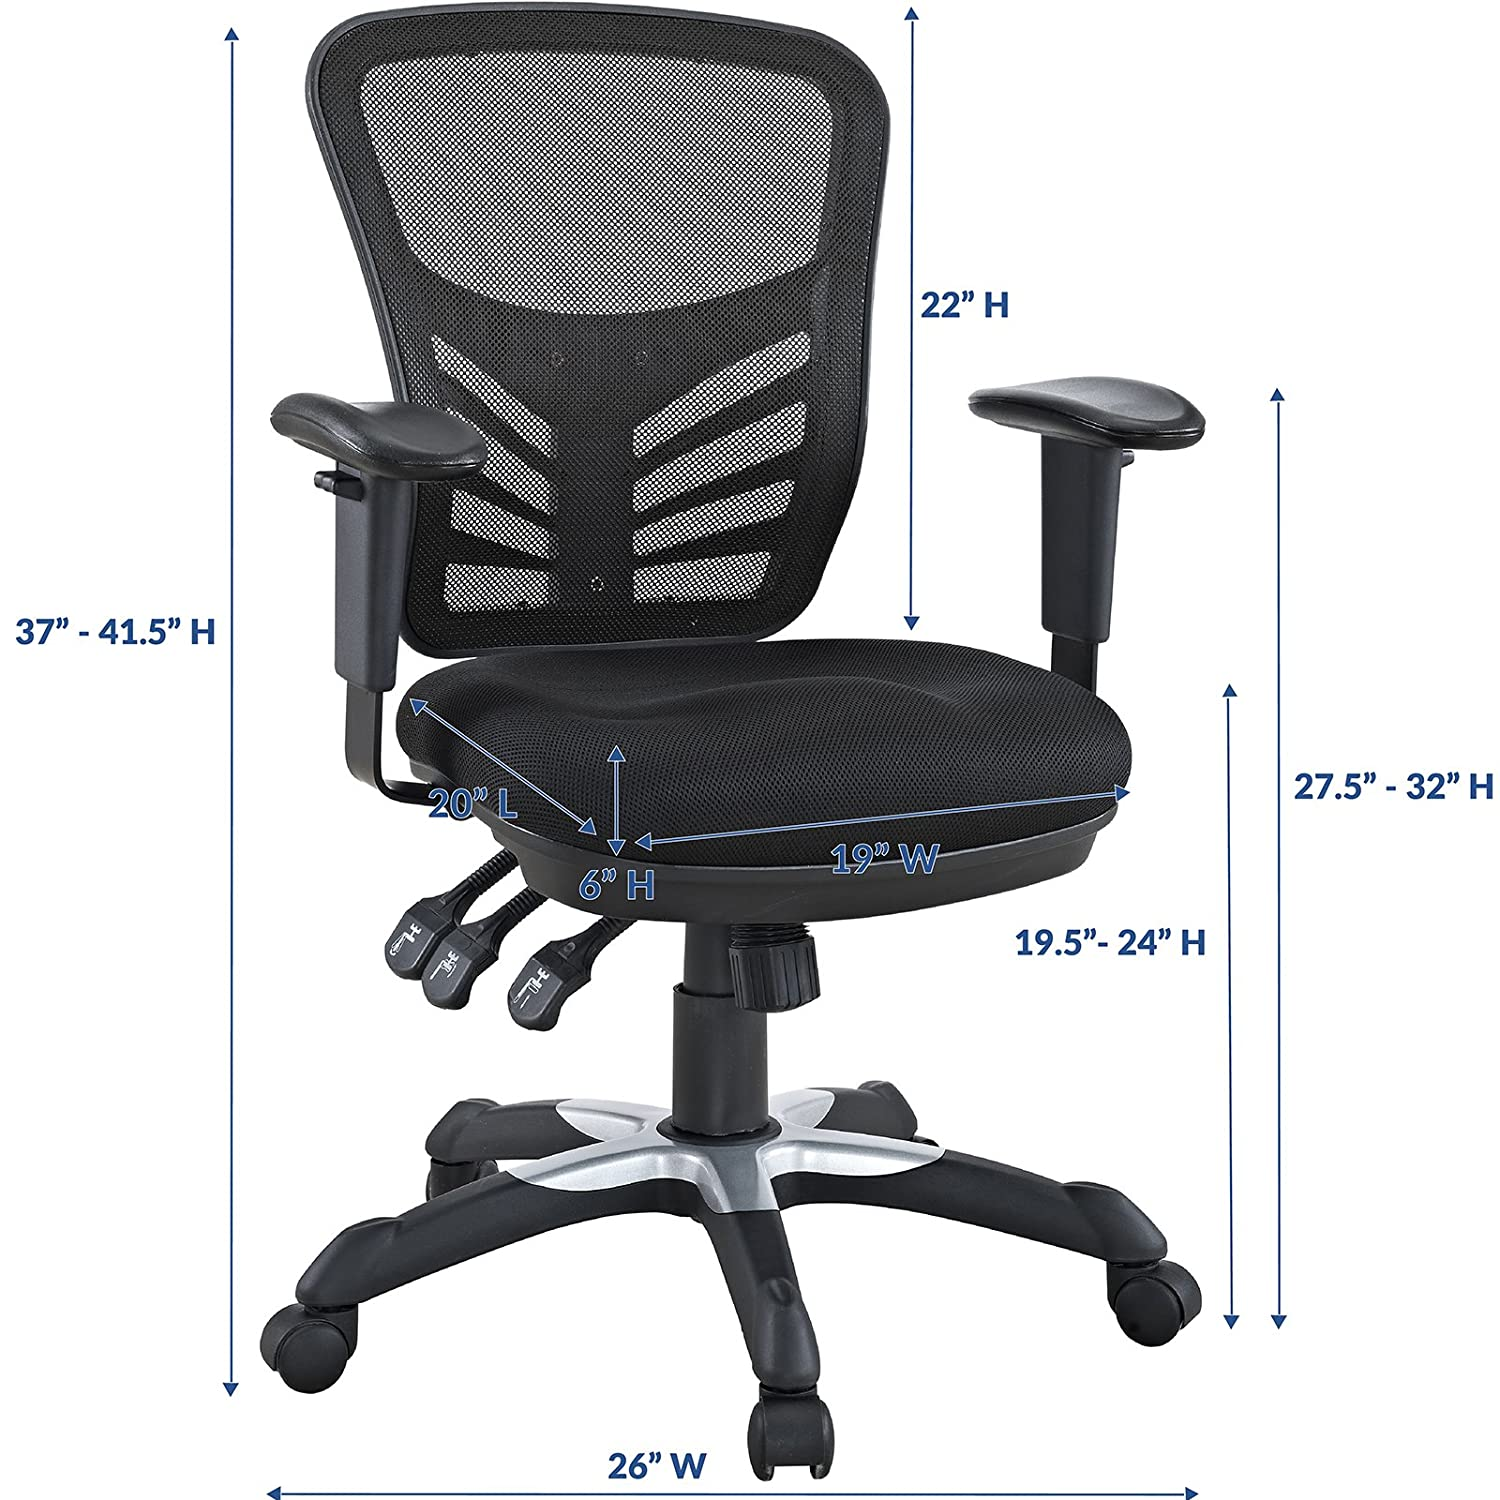 Eei 757 Gry Modway Articulate Ergonomic Mesh Office Chair In Gray Modway Inc